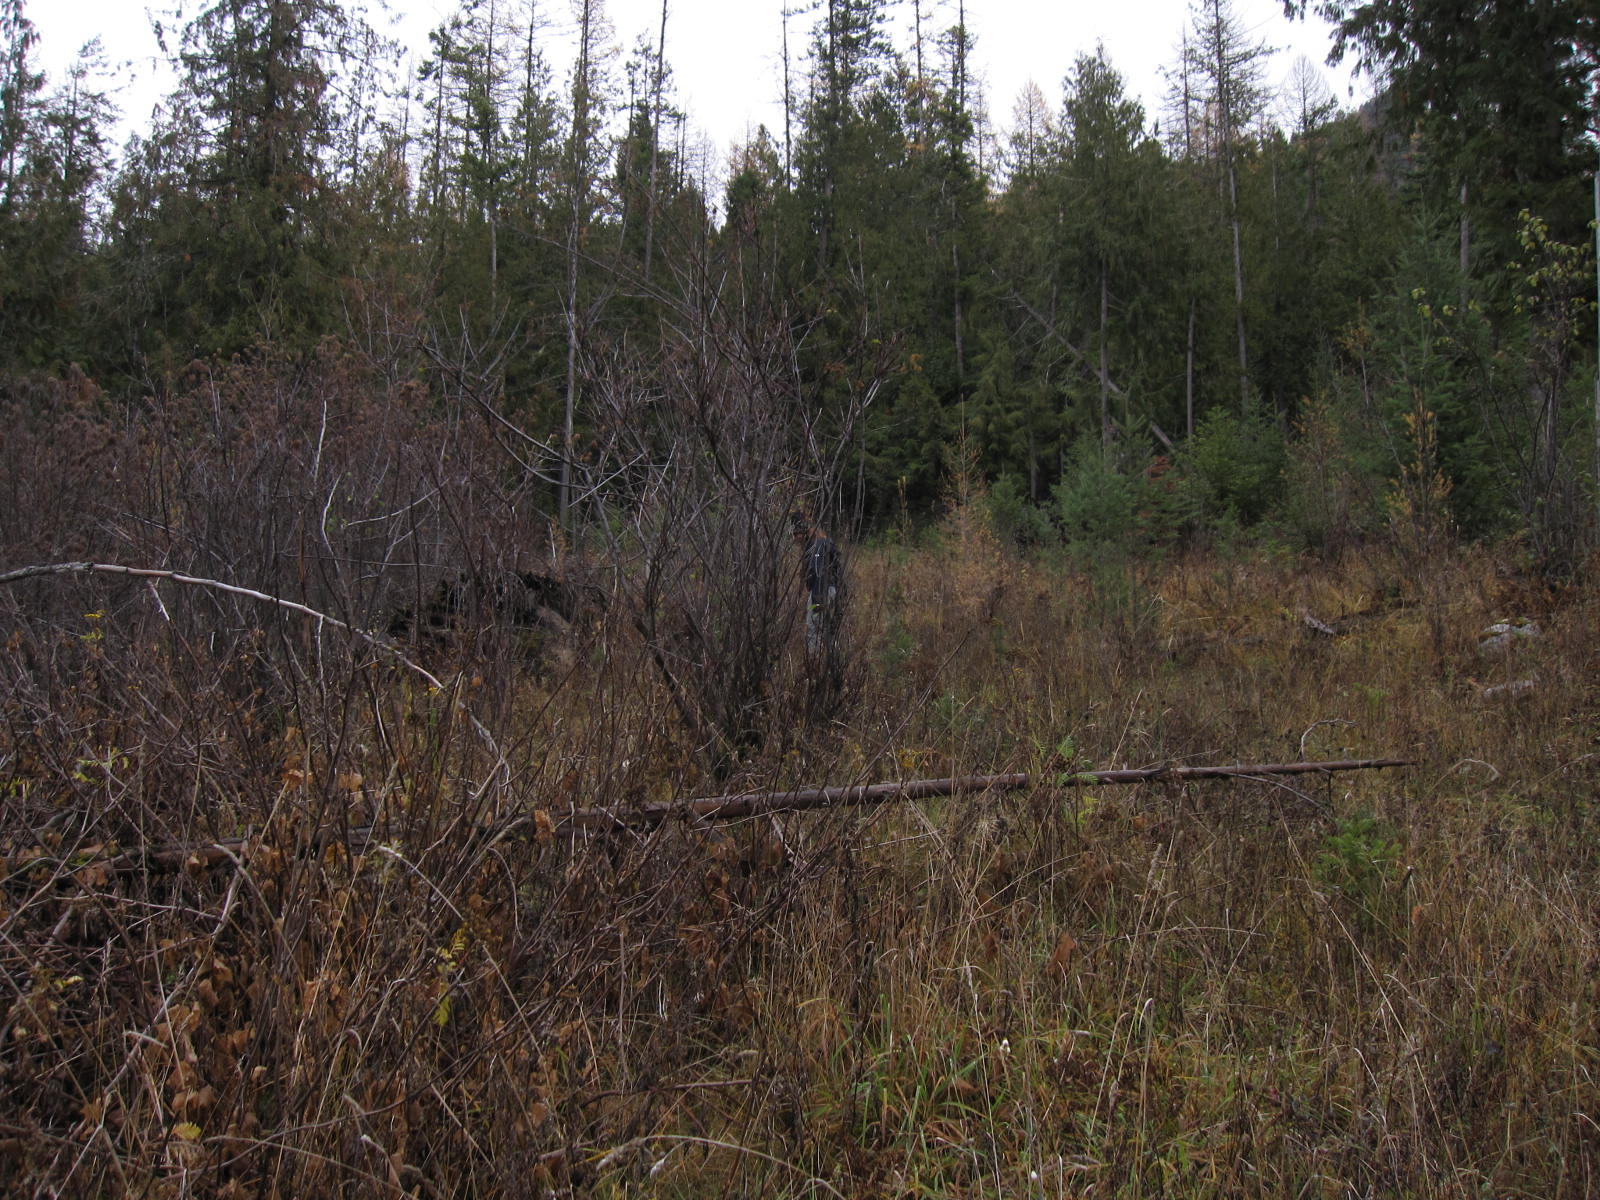 Terreno per Vendita alle ore Five lots bordering Forest Service with a filtered view of Lake Pend Oreille B4 L15-19 Pend Oreille Ave Bayview, Idaho, 83803 Stati Uniti